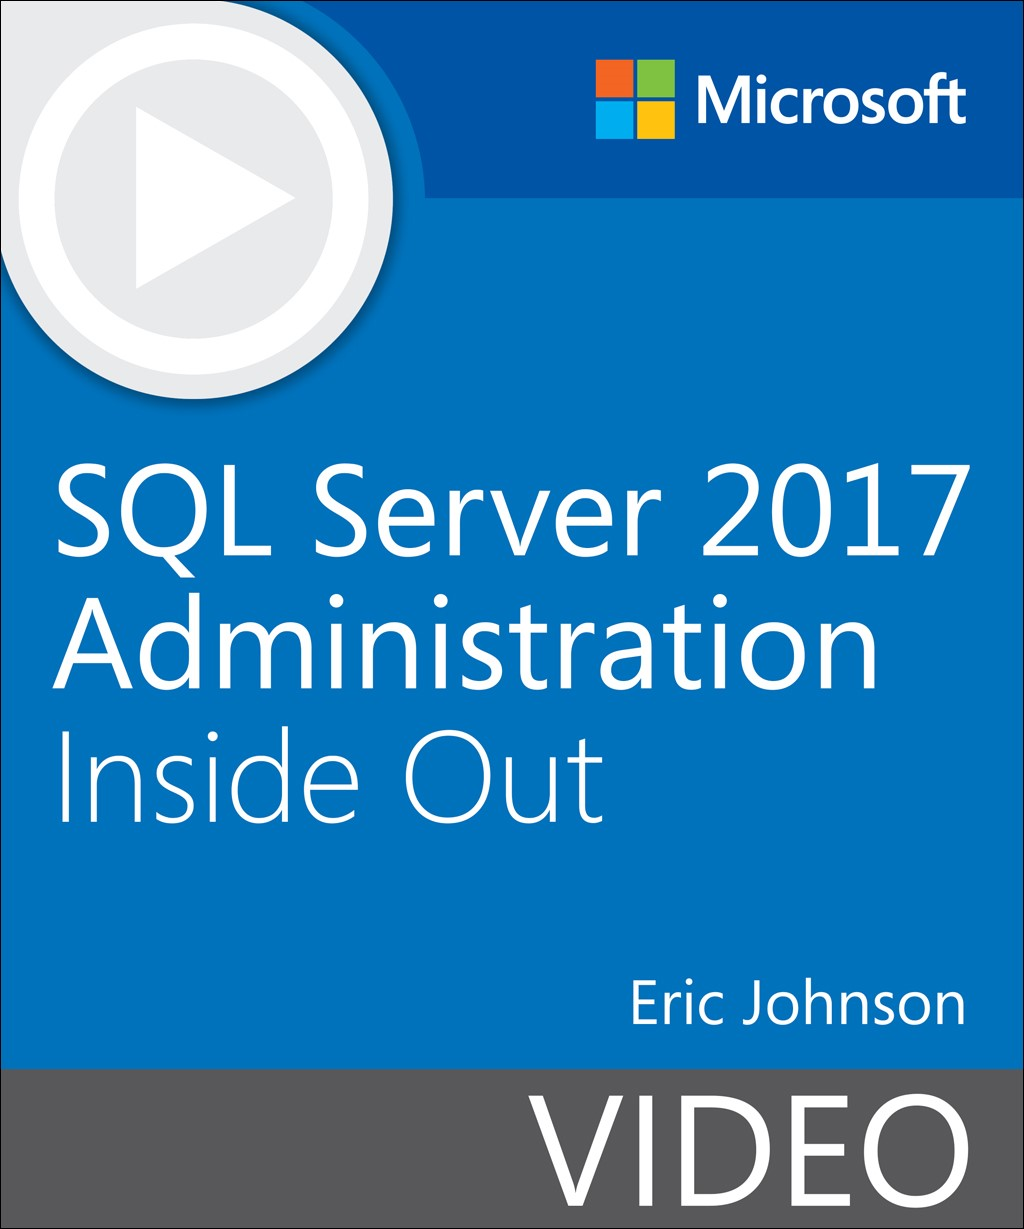 SQL Server 2017 Administration Inside Out (Video)